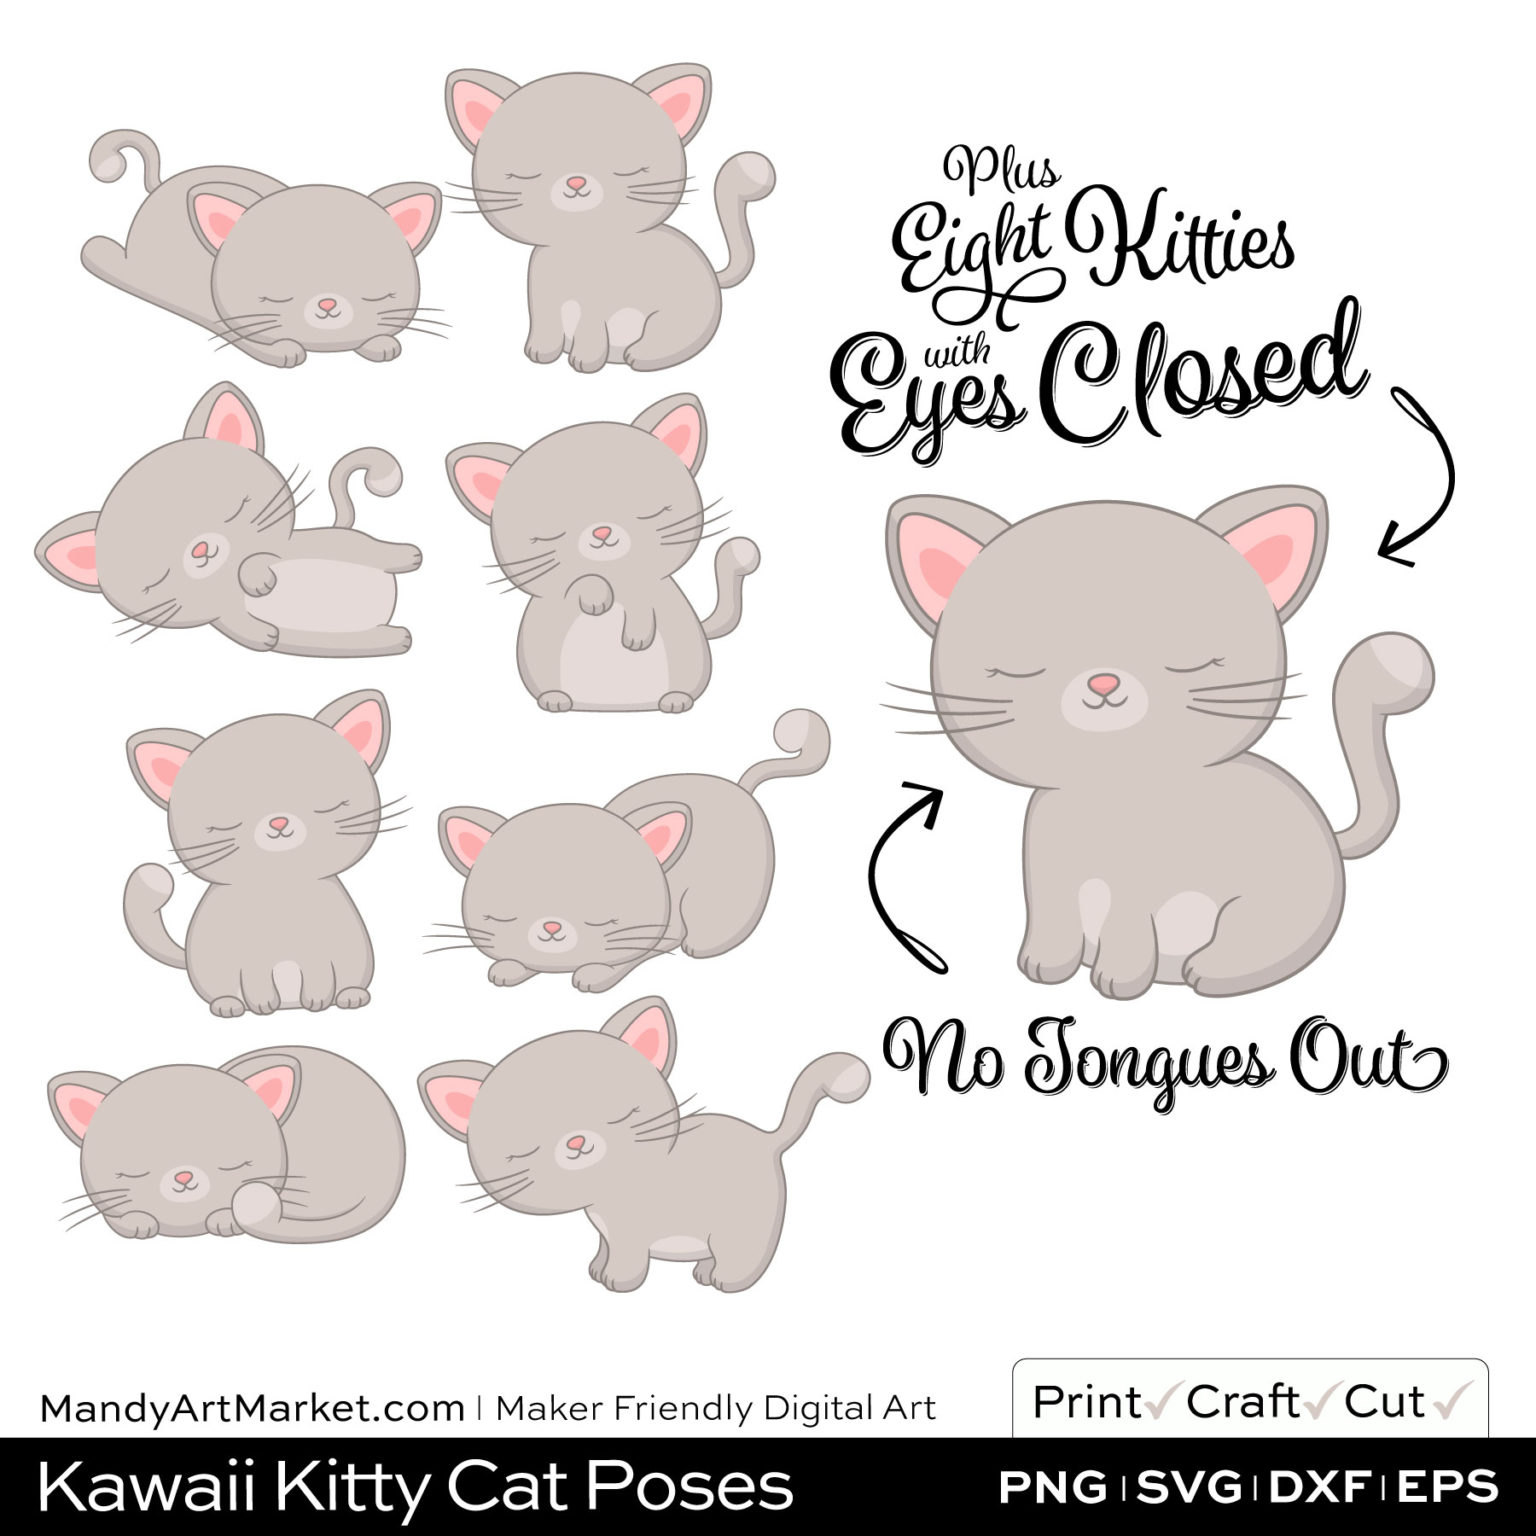 Oatmeal Gray Kawaii Kitty Cat Poses Clipart PNGs Included in Download